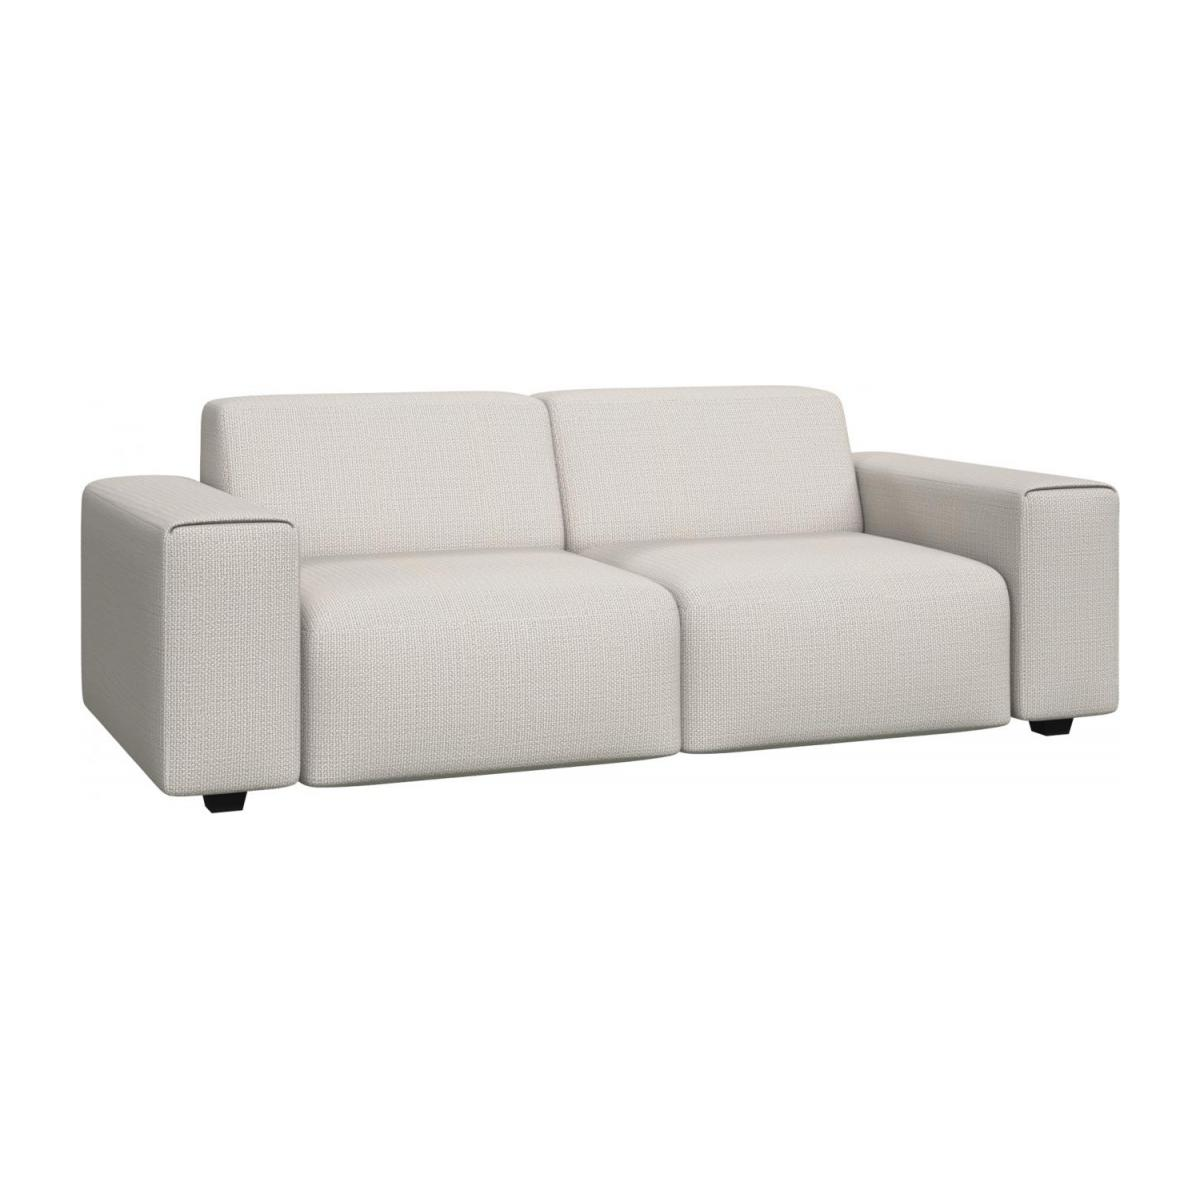 3 seater sofa in Fasoli fabric, snow white n°1